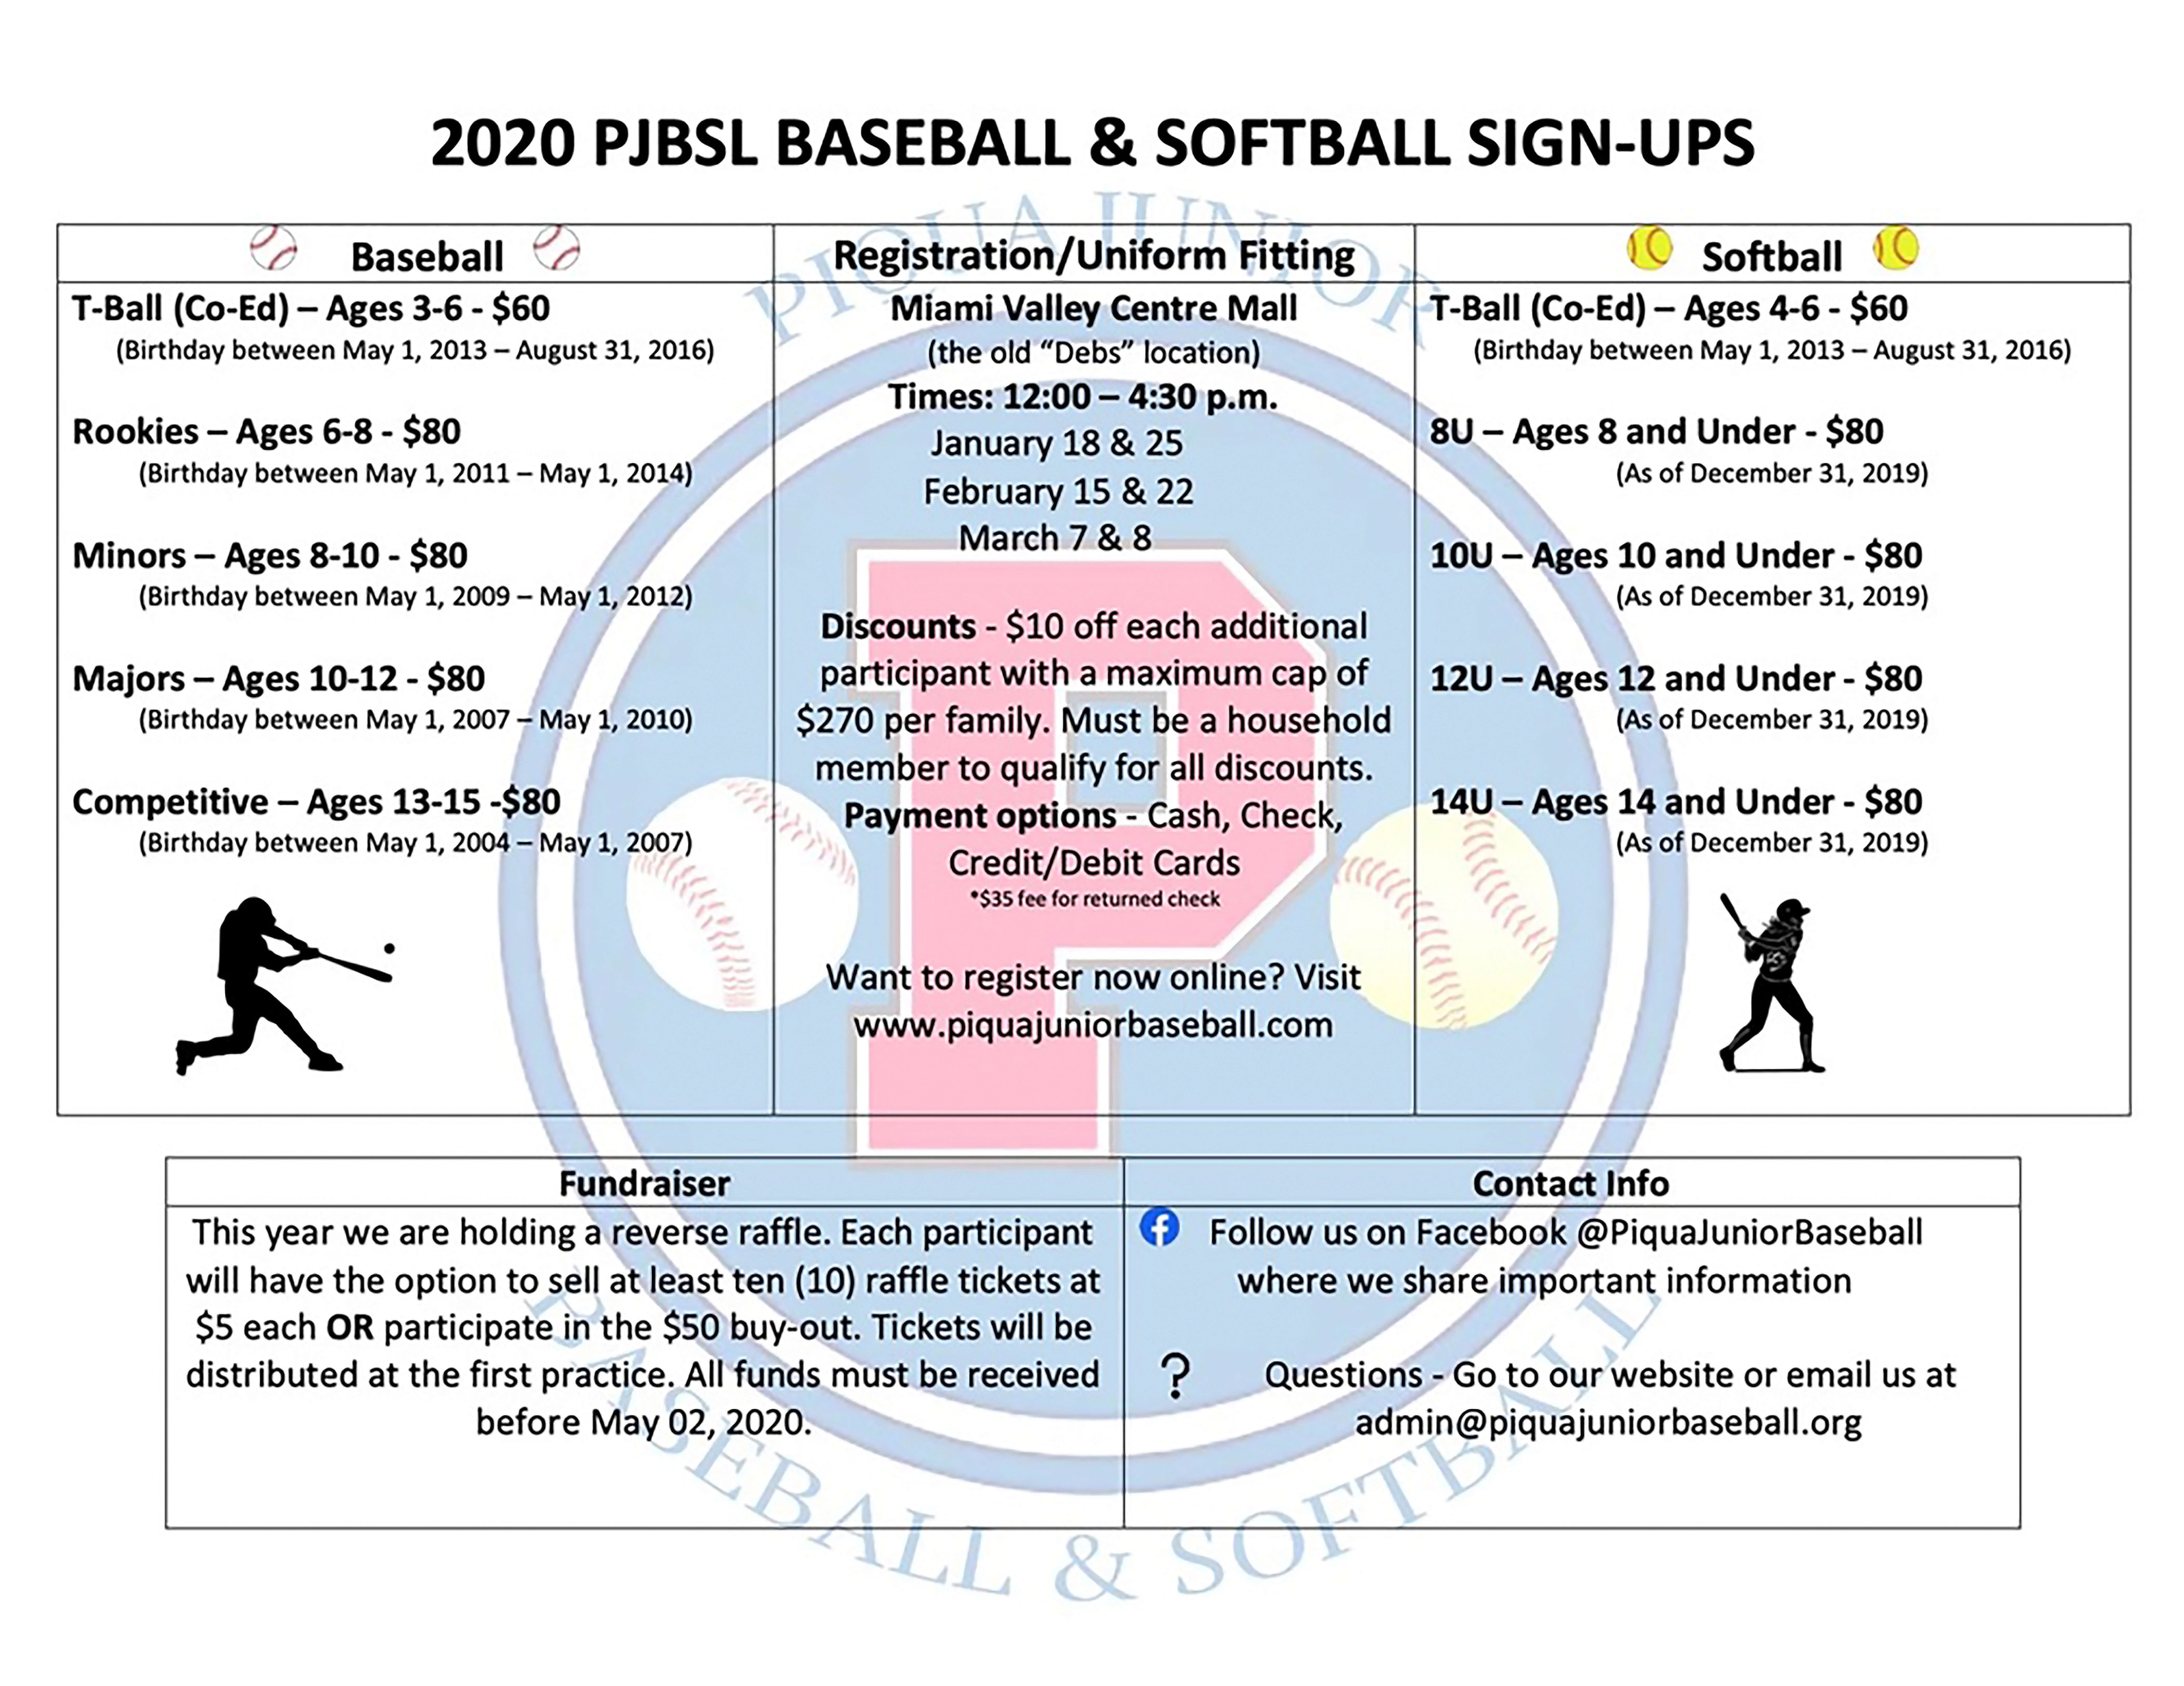 2020 PJBSL Baseball and Softball sign up calendar